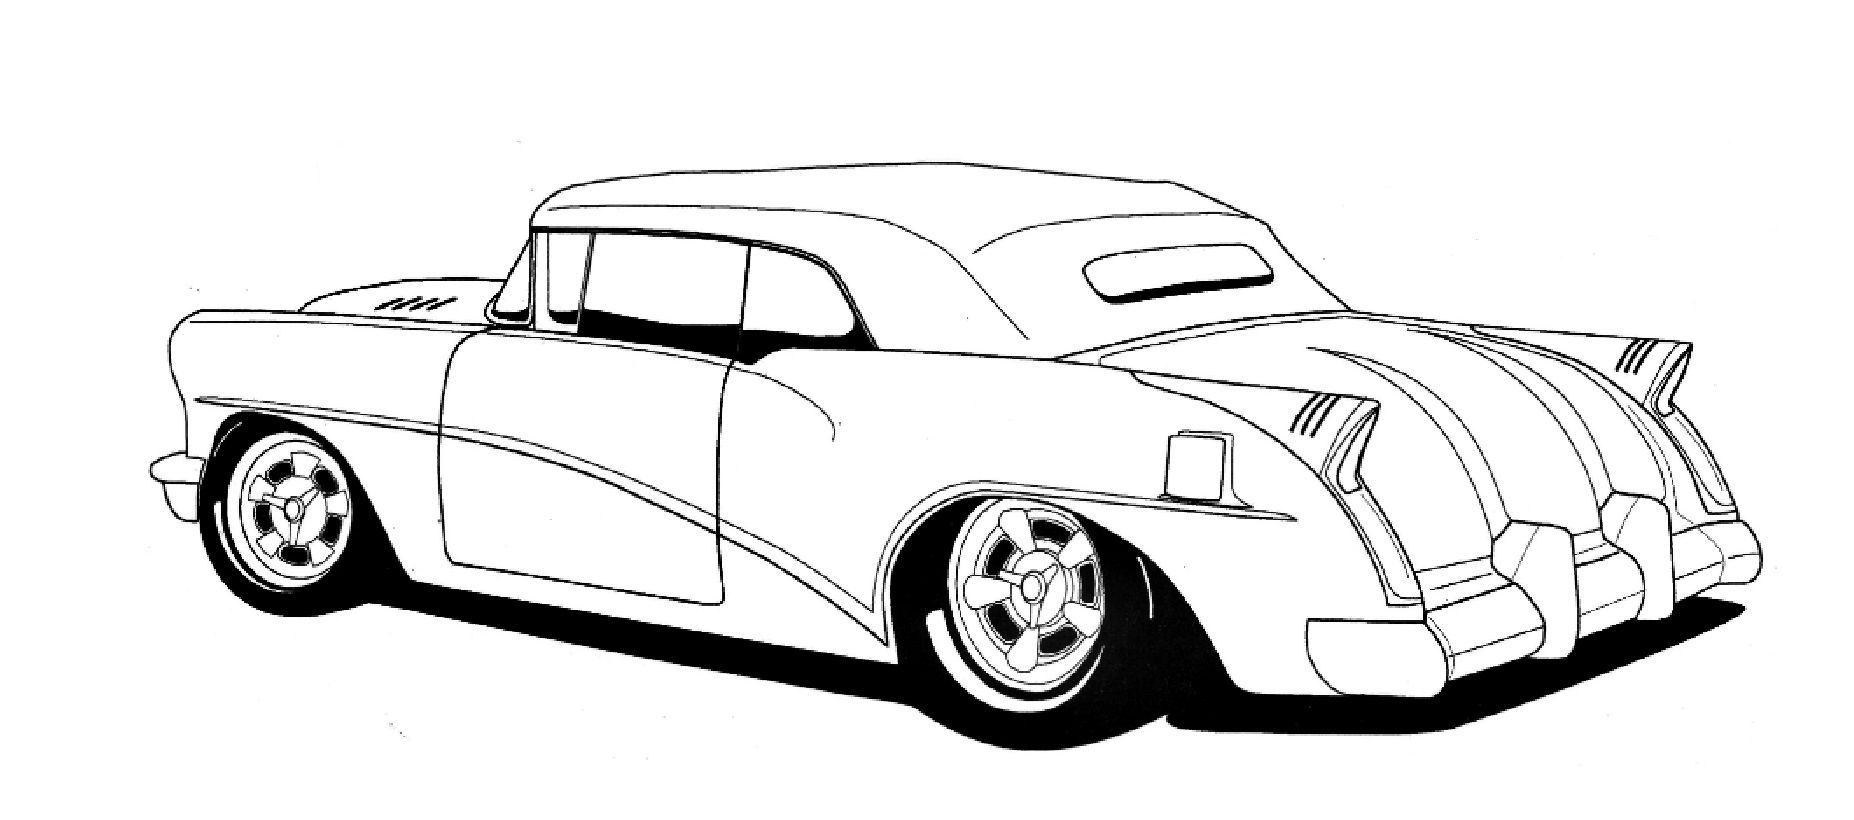 expensive car coloring pages printable bugatti coloring pages di 2020 car expensive coloring pages